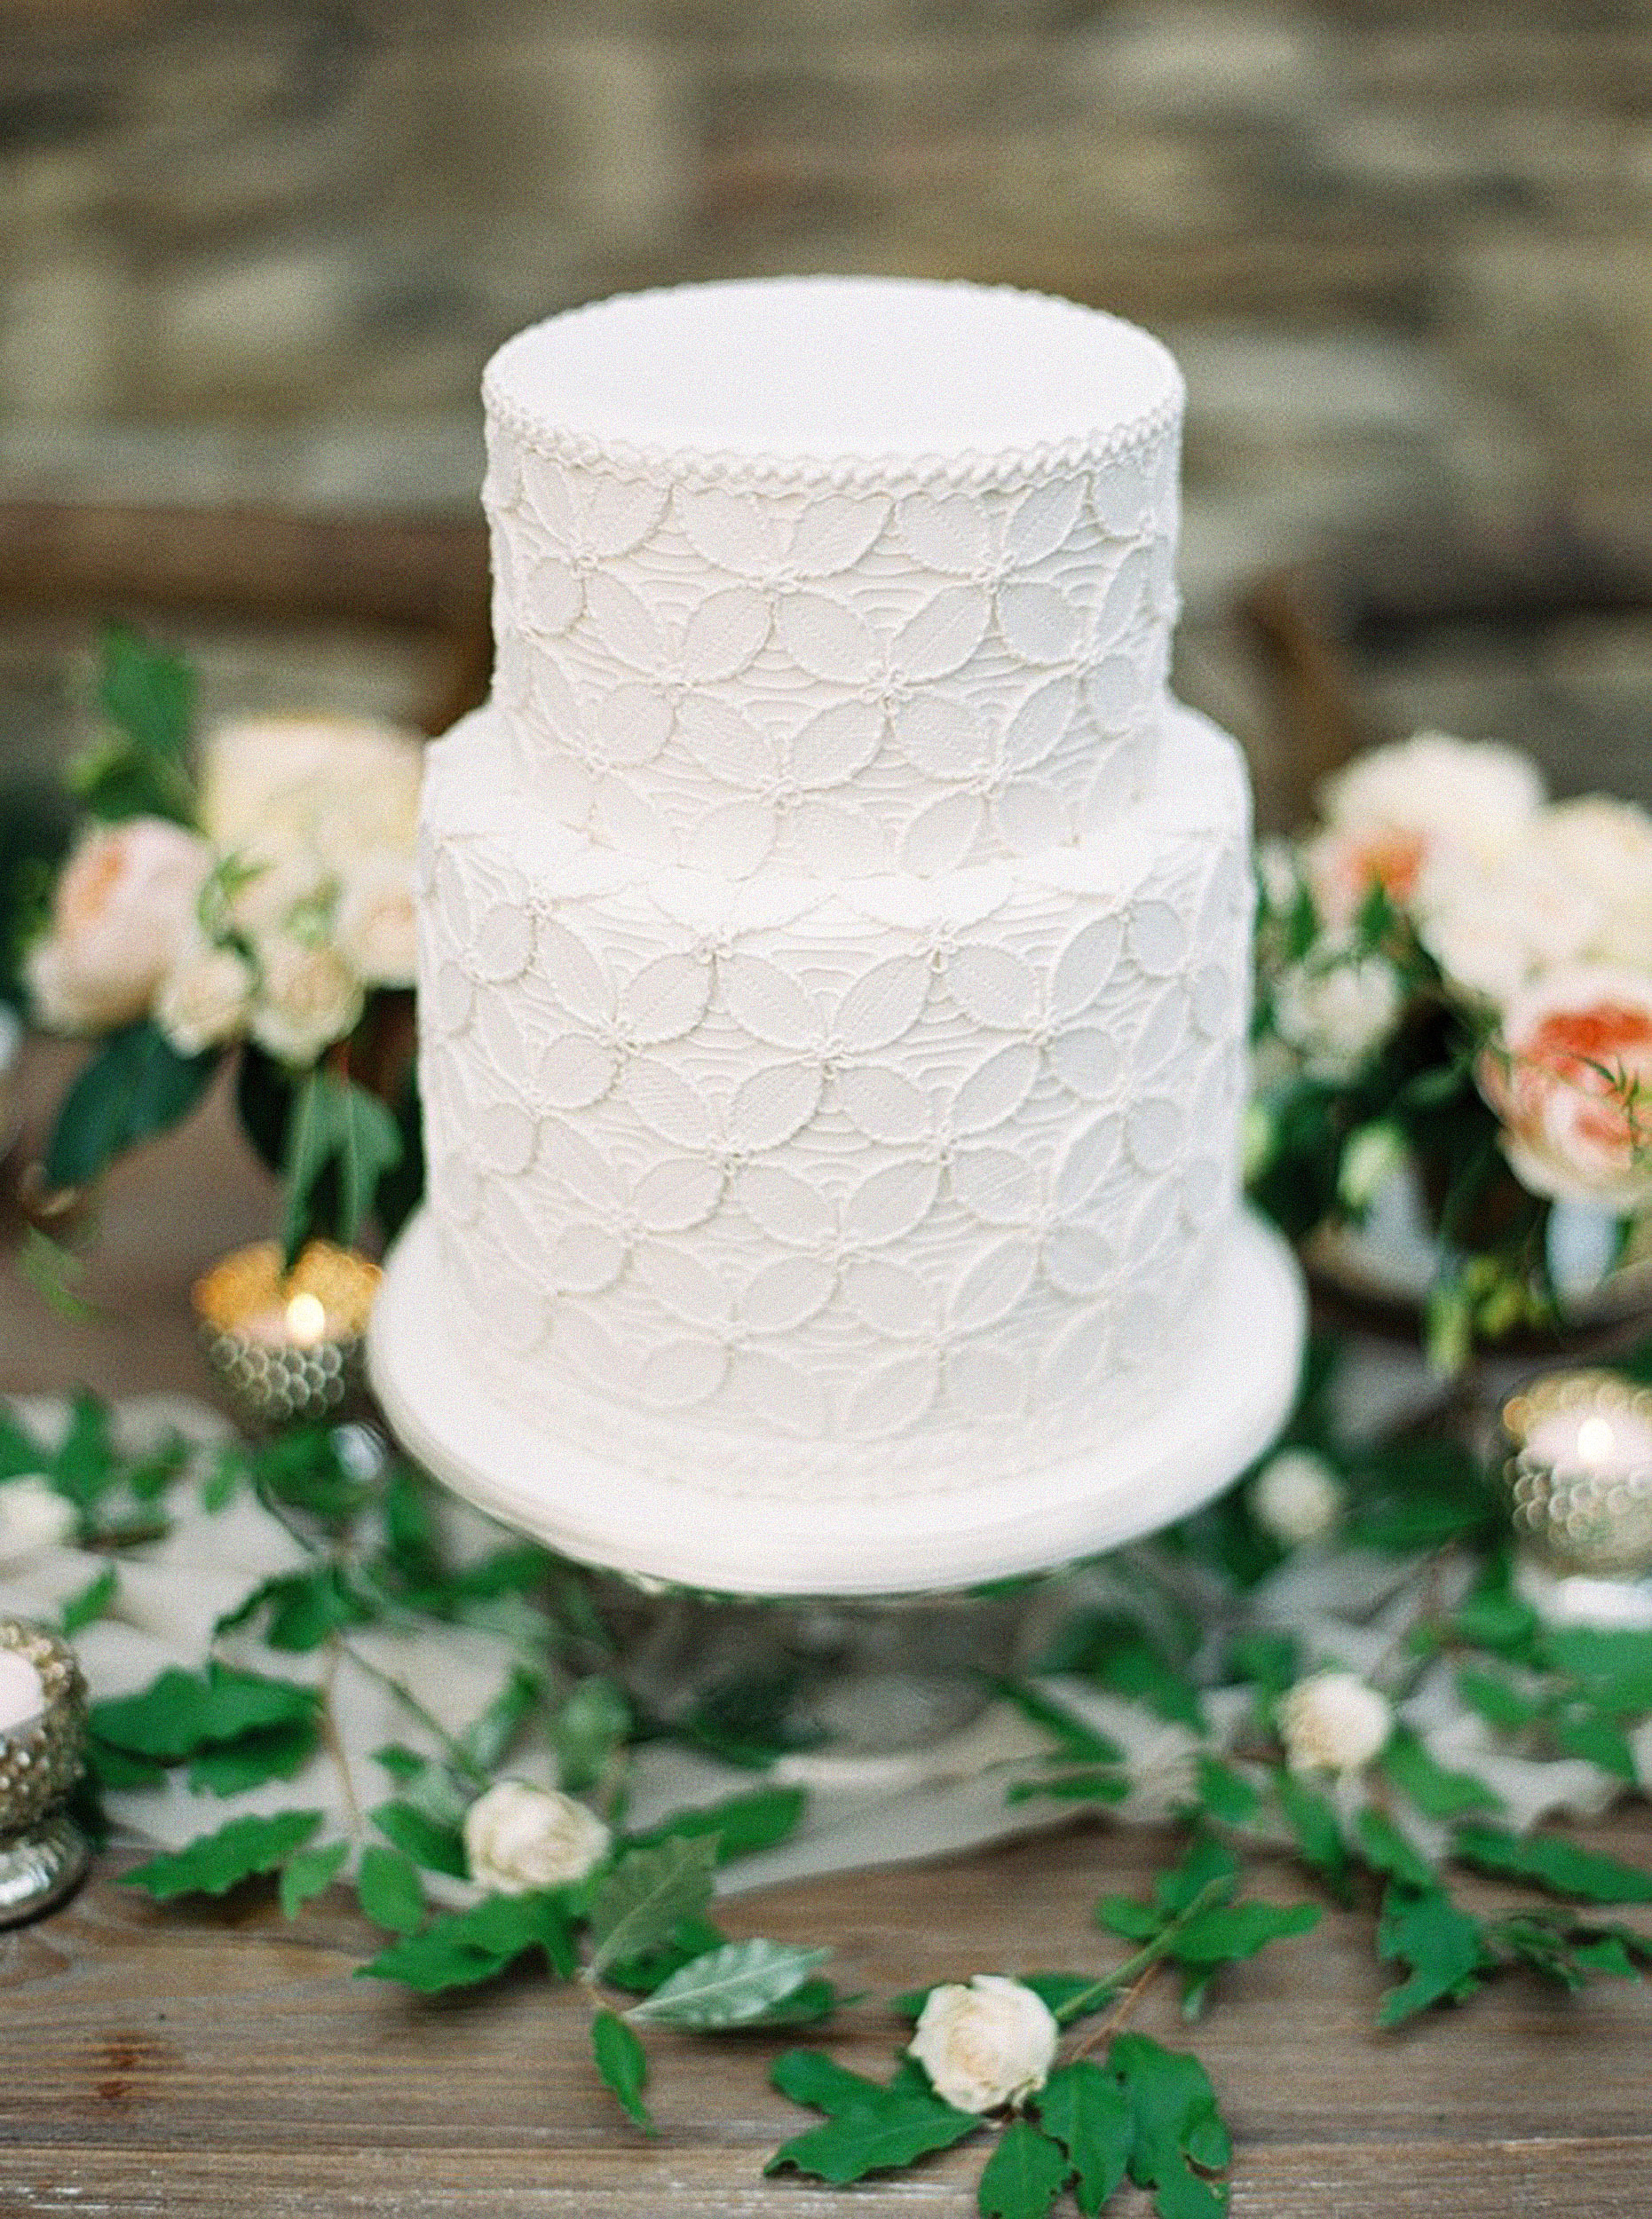 How to Keep Your Cake Looking Great at Your Summer Wedding